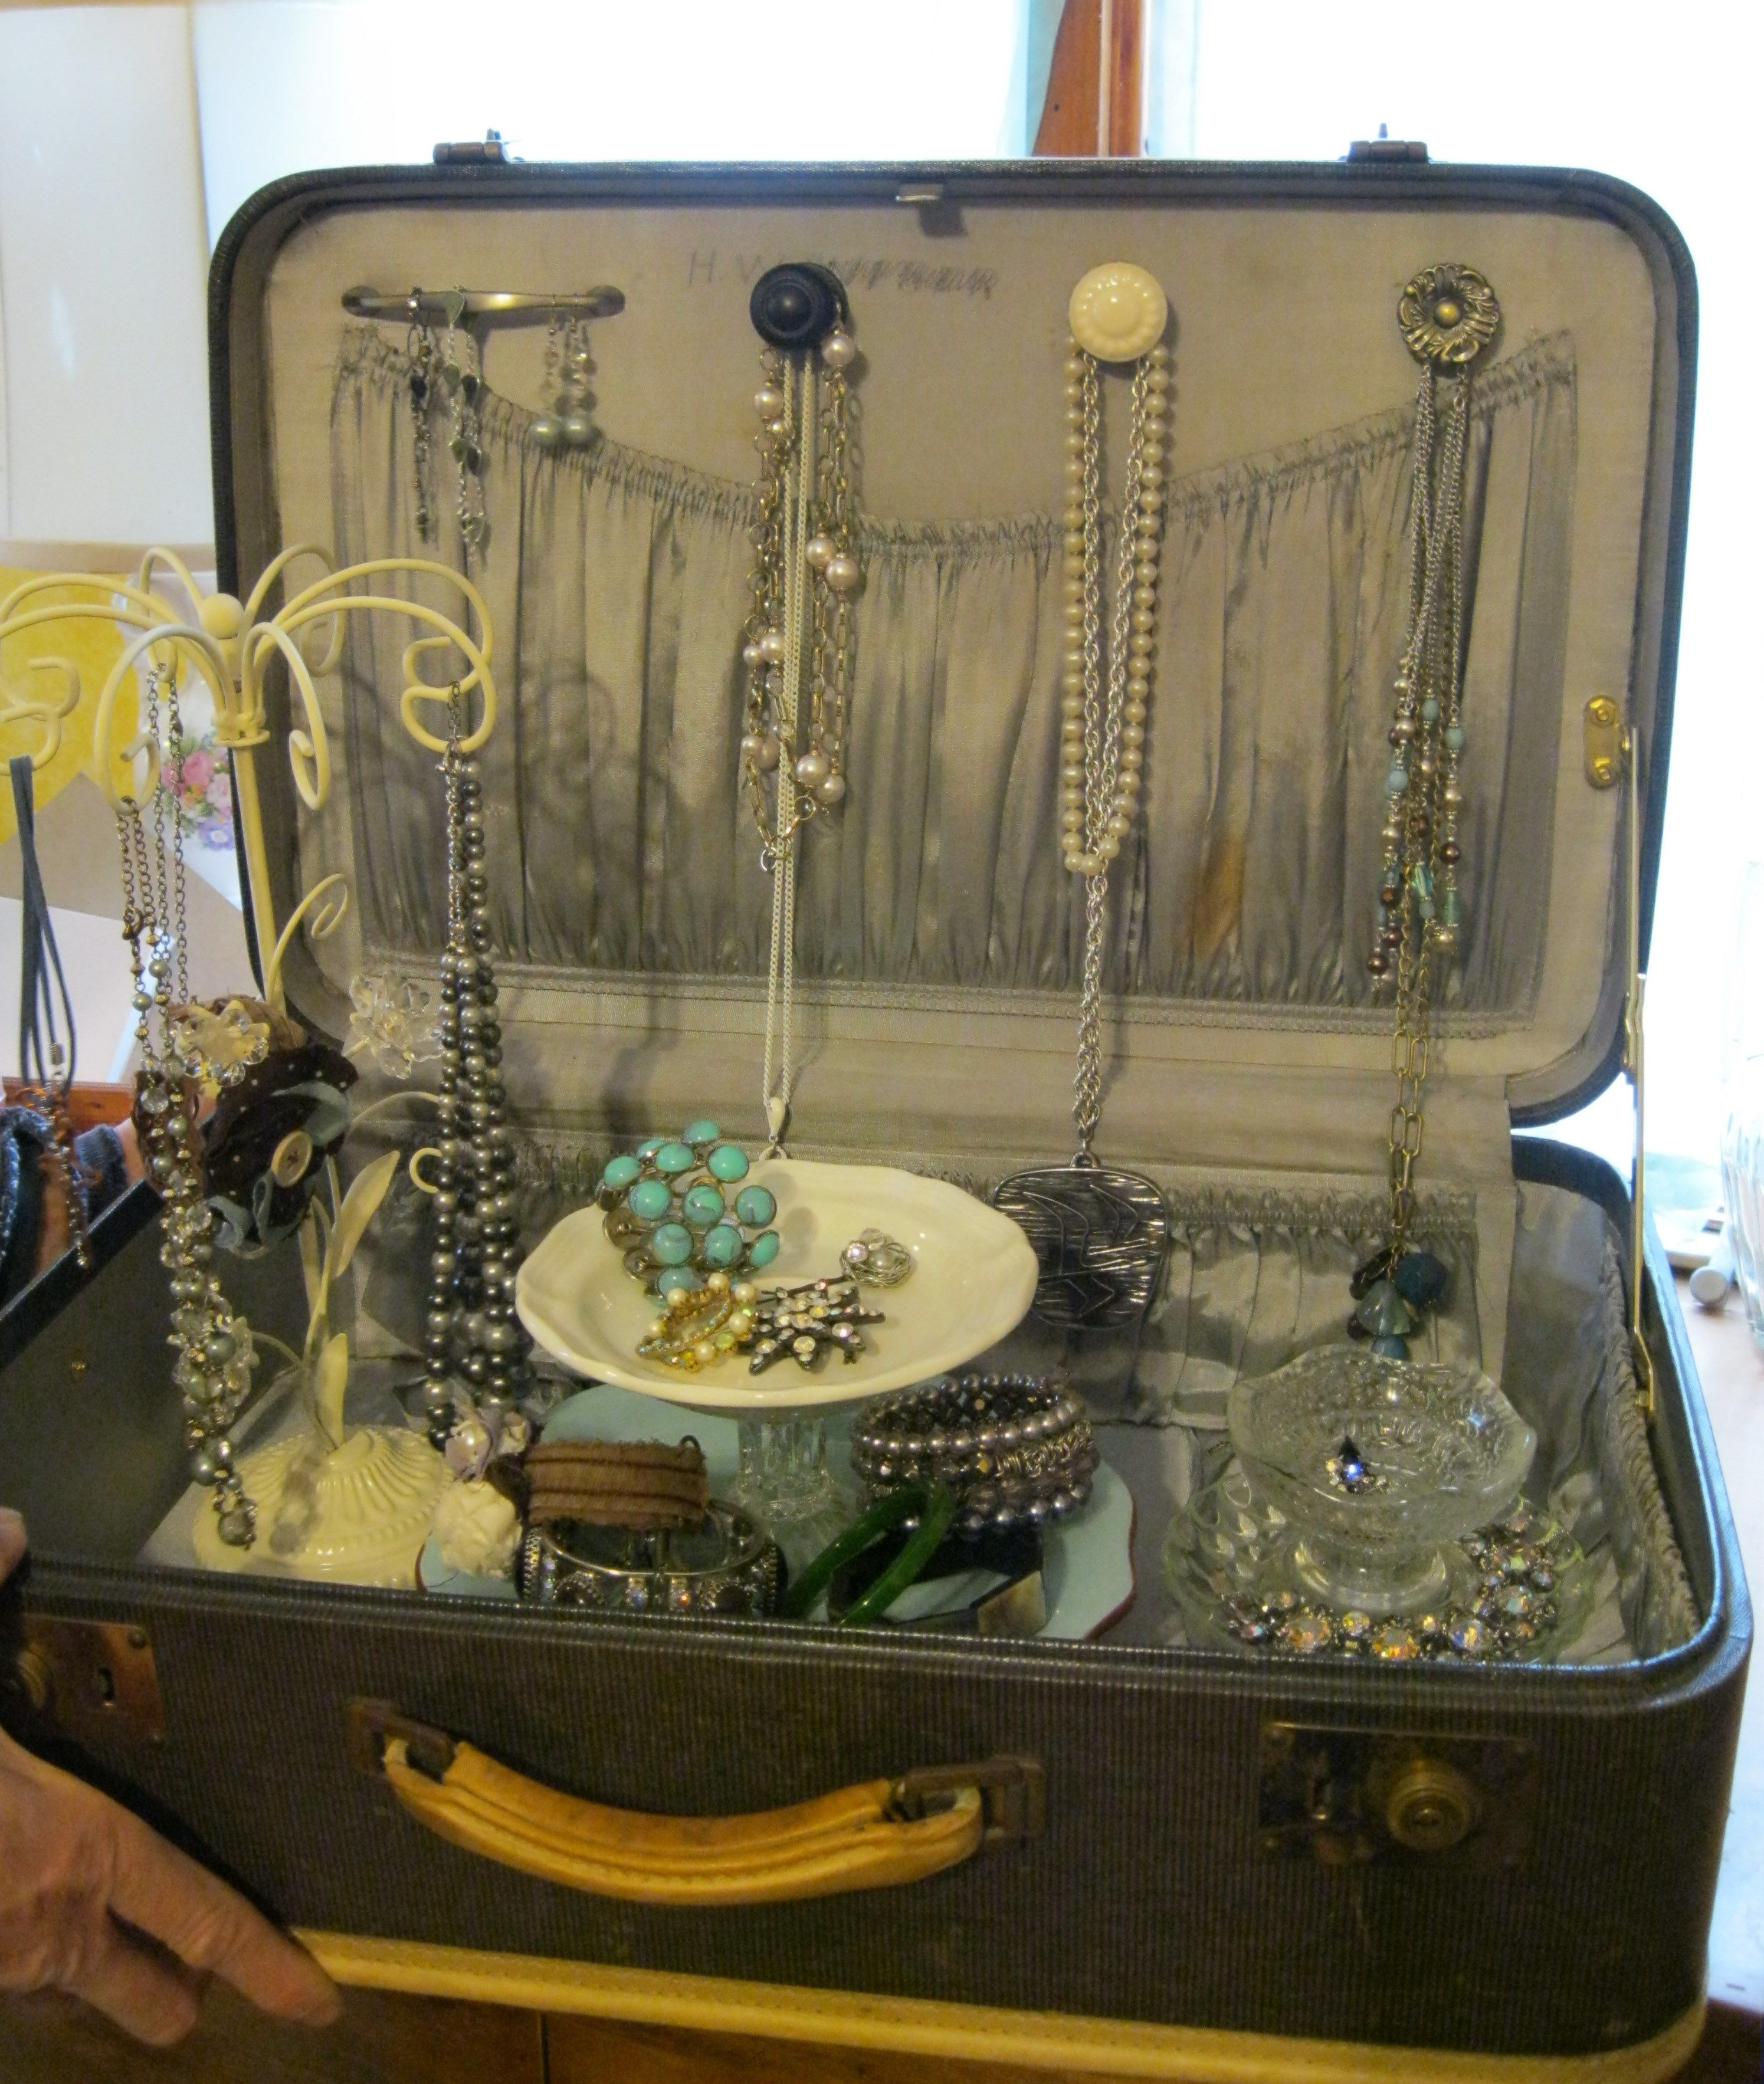 Vintage Suitcase Ideas | vintage suitcase jewelry box | Old ...